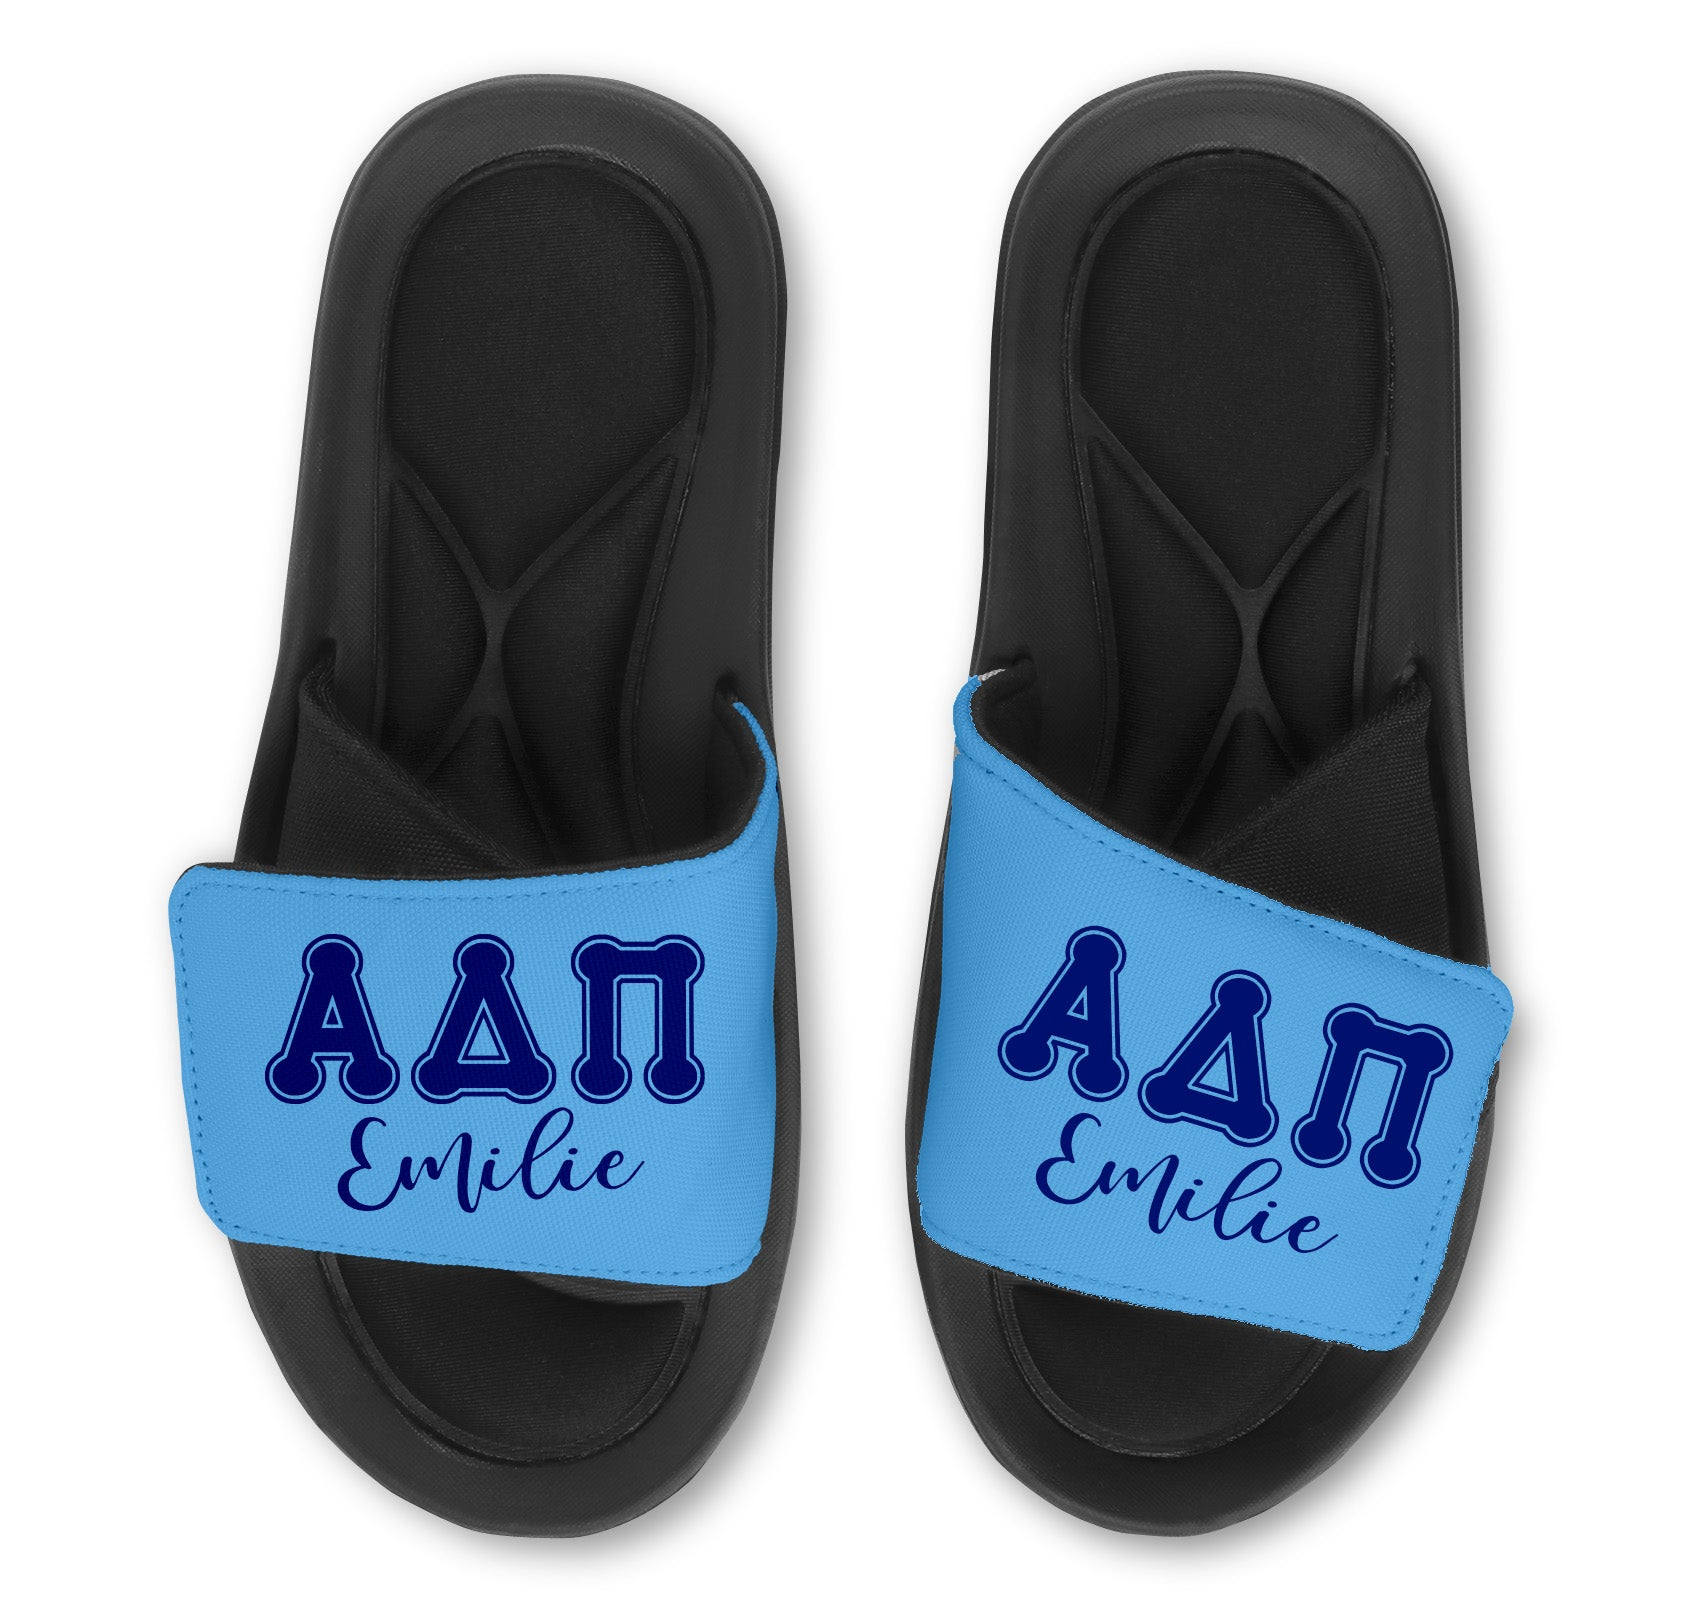 Alpha Delta Pi Slides -Customize With Your Name